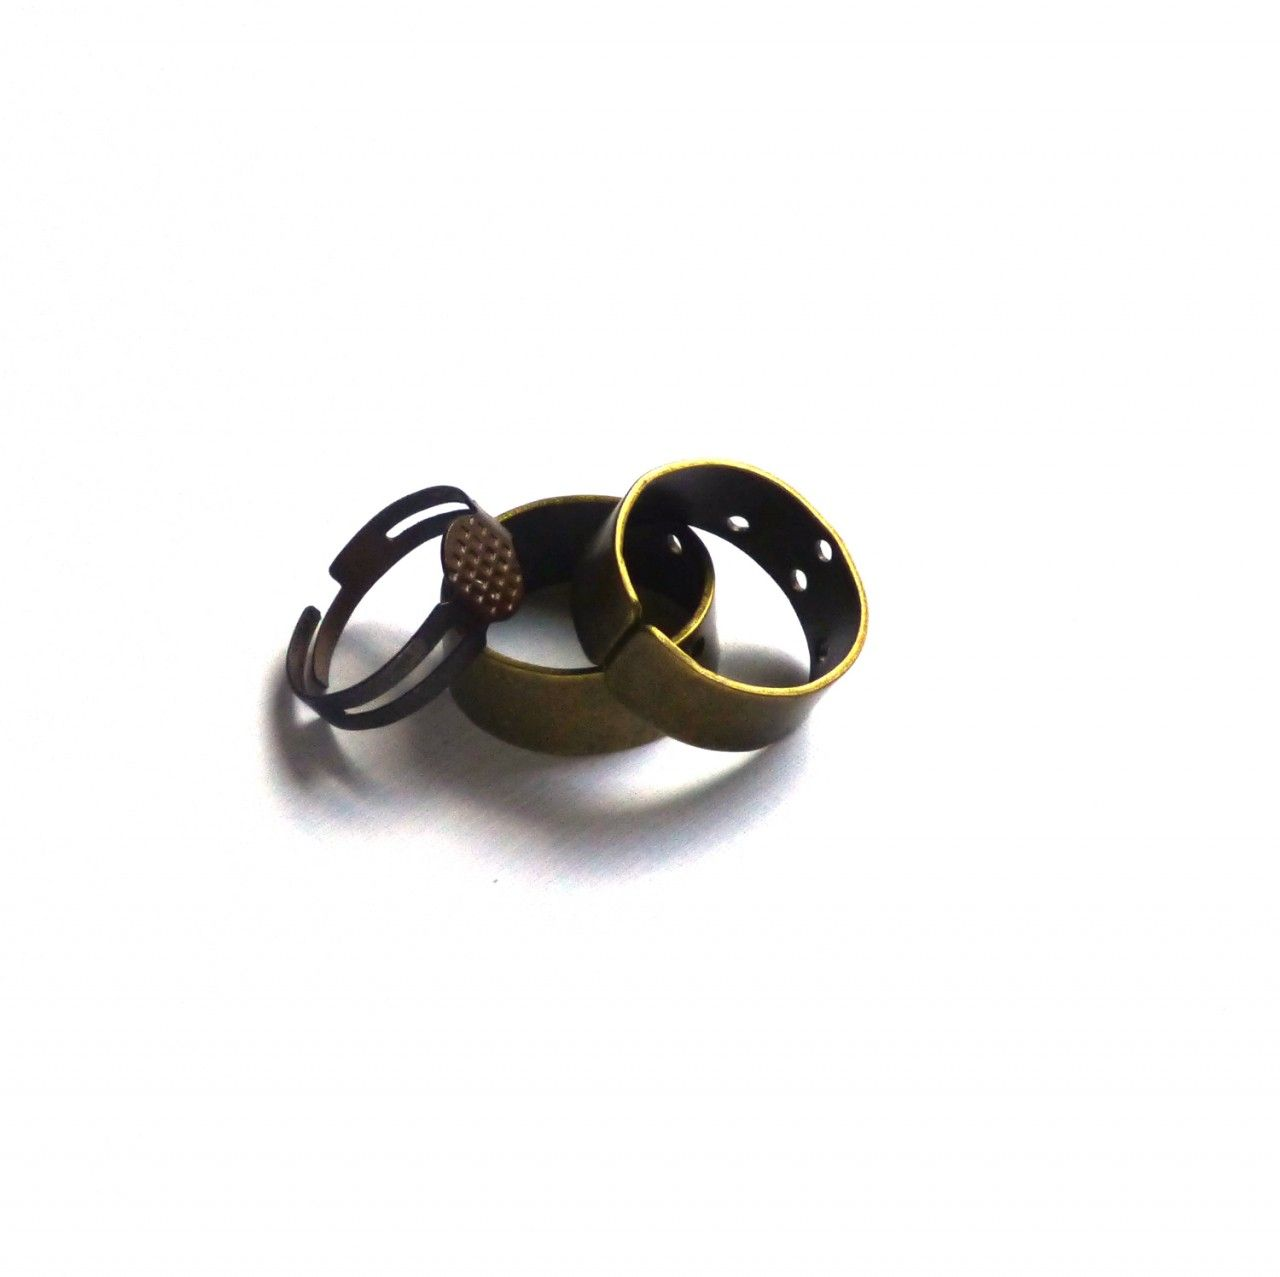 Brass Ring Base. Brass Ring with Holes. Brass Ring with Platform. Adjustable. Ring Making Supplies. Set of Three (3). - $2.00 - Handmade Commercial Supplies, Crafts and Unique Gifts by Trunk Sale #ringblanks #ringbase #stackingrings #jewelrysupplies #jewelrymakingsupplies #crafting